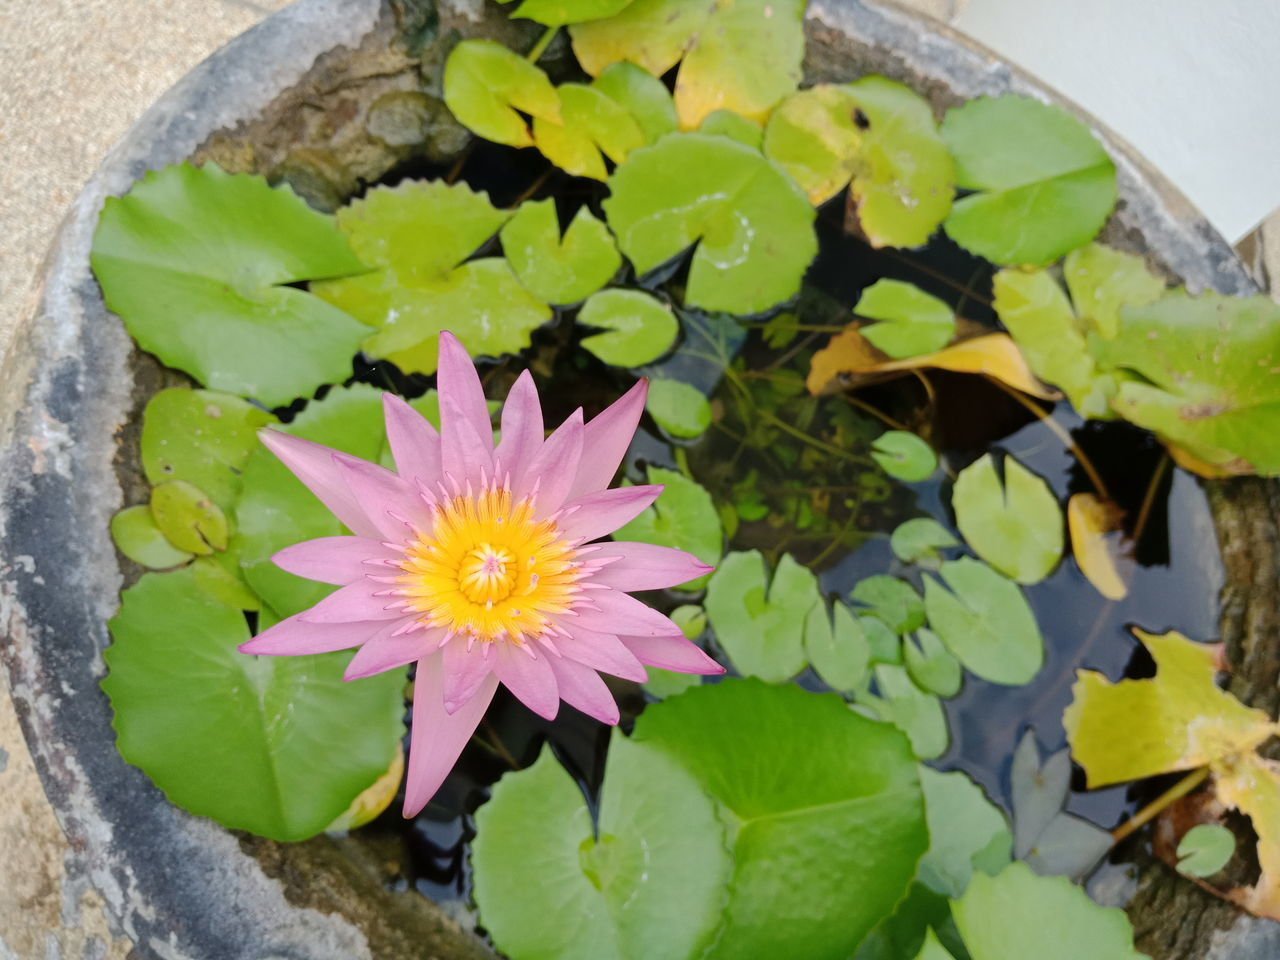 flower, flowering plant, freshness, plant, vulnerability, leaf, plant part, beauty in nature, growth, fragility, close-up, petal, nature, high angle view, flower head, inflorescence, no people, day, water, green color, floating on water, purple